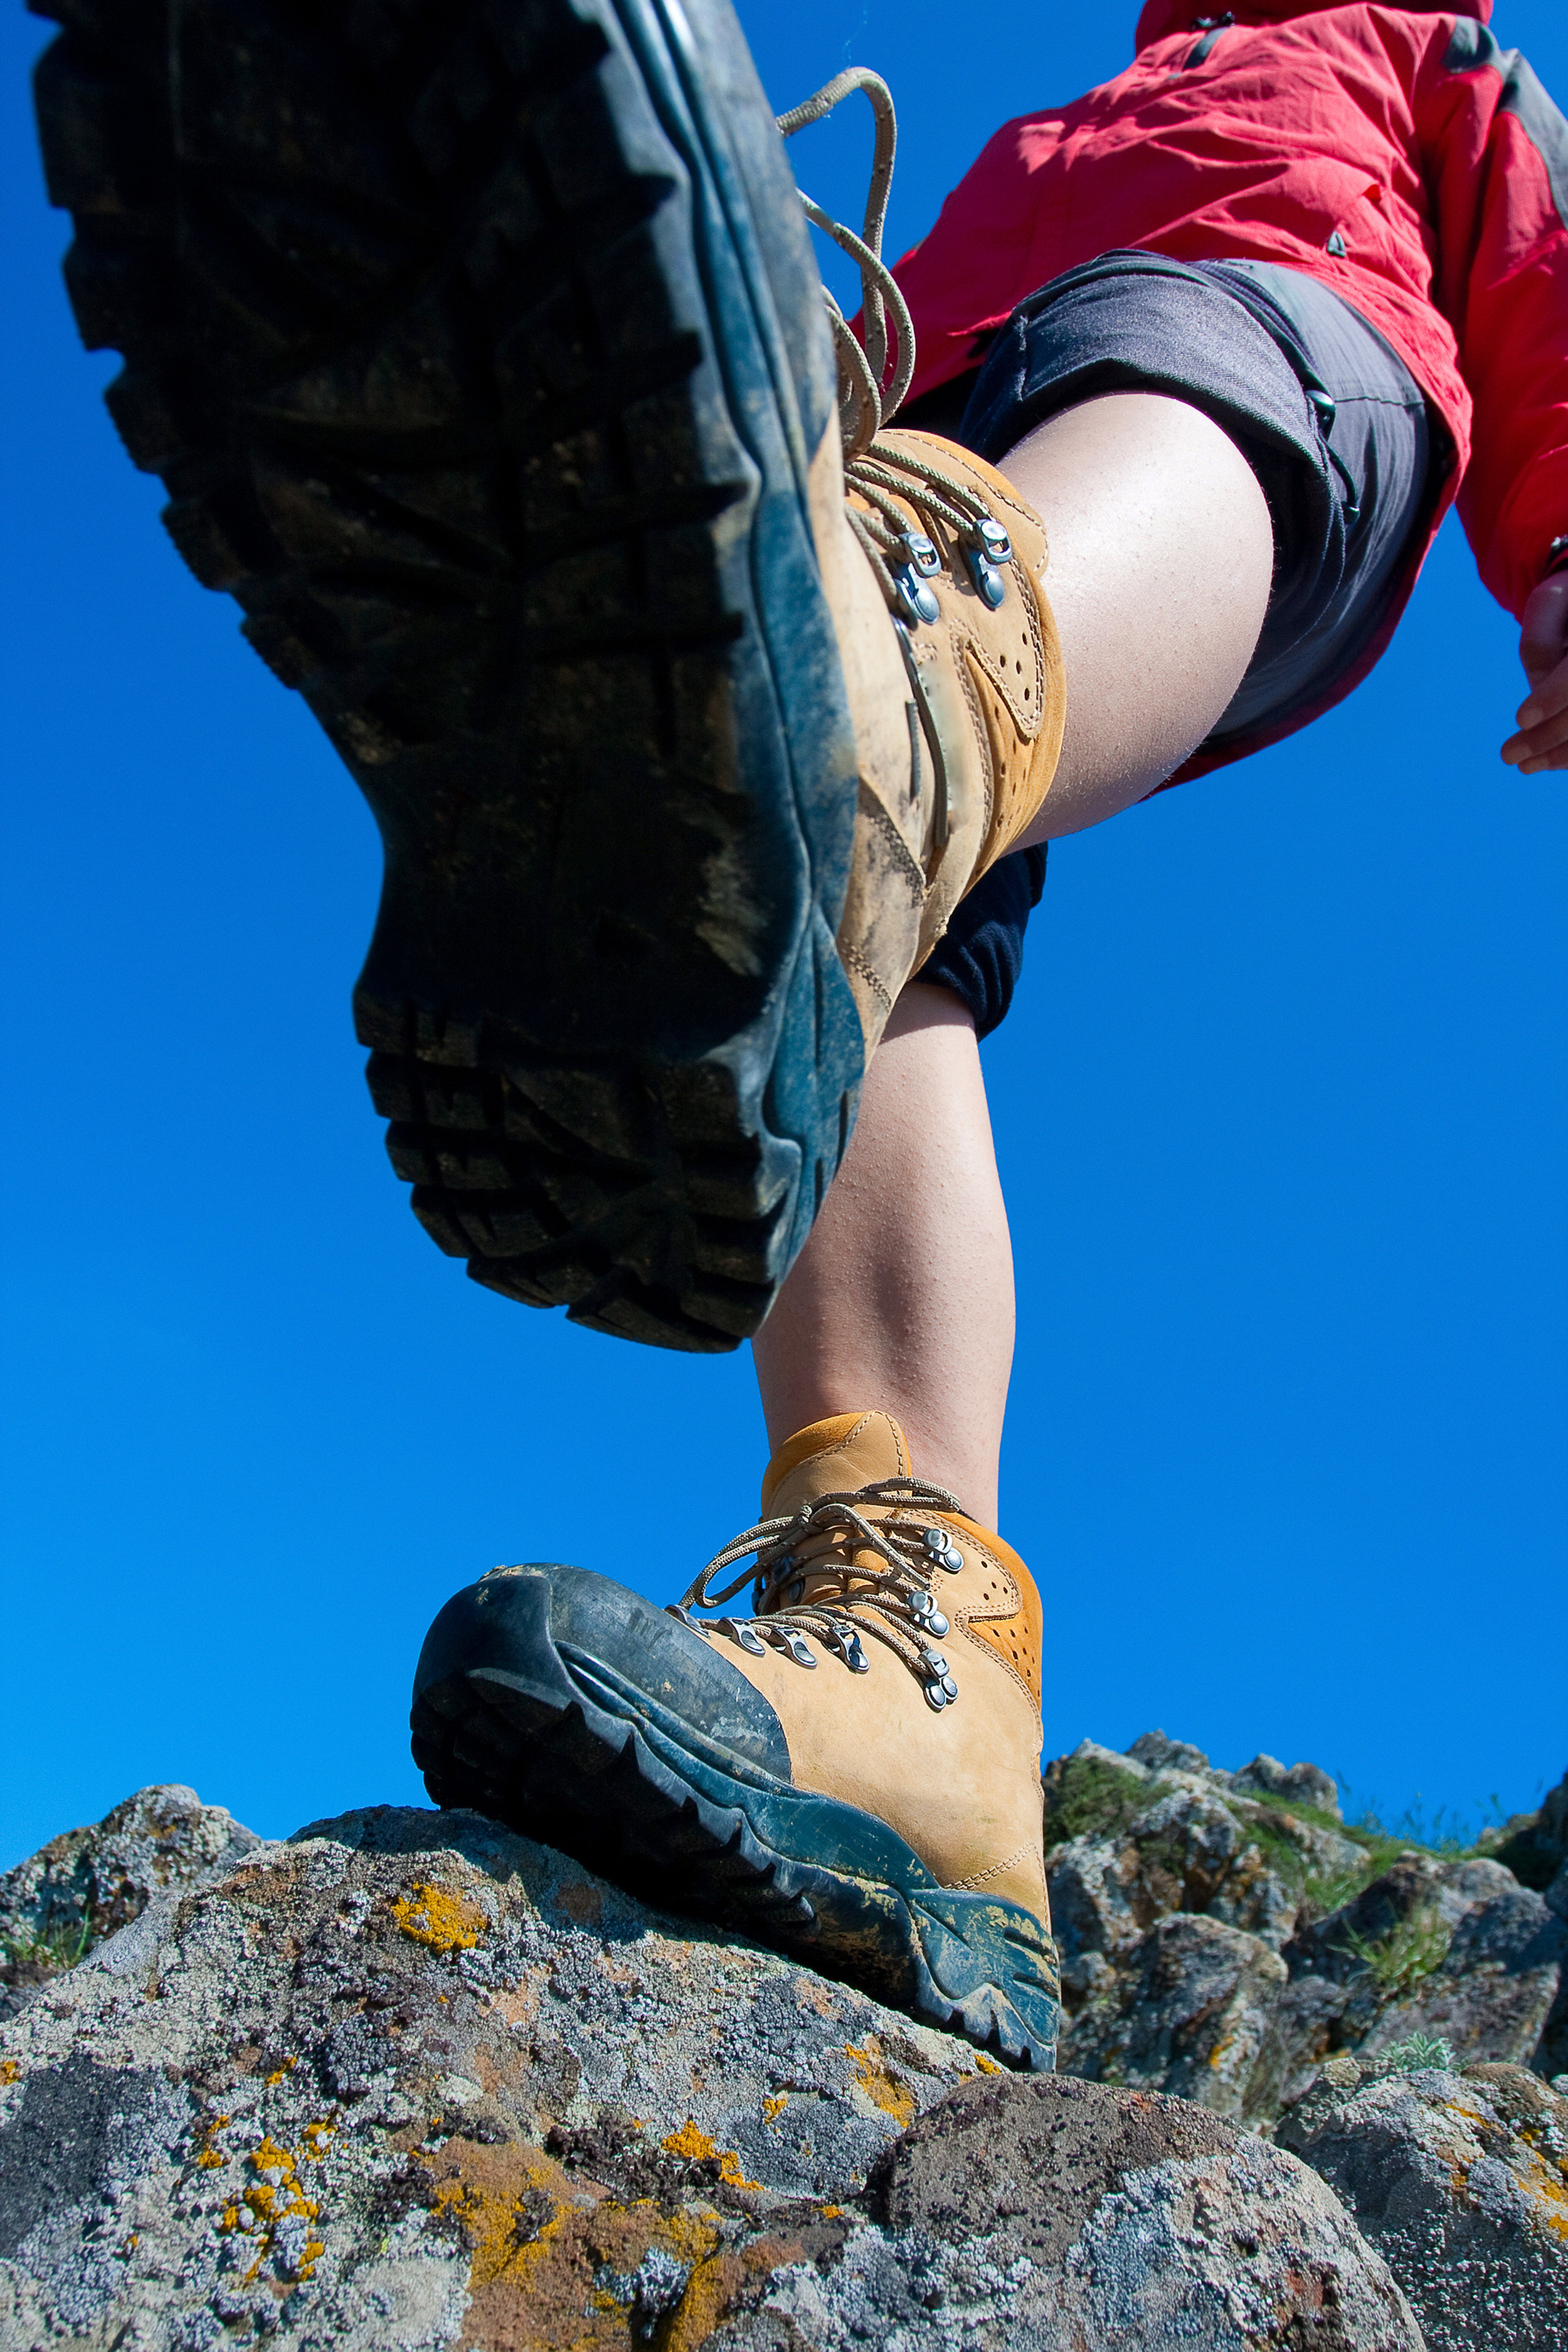 Training For Your Challenge - Whether it's trekking to the Roof of Africa or running the Barcelona Marathon, check out our tips for training for your trek or for your marathon